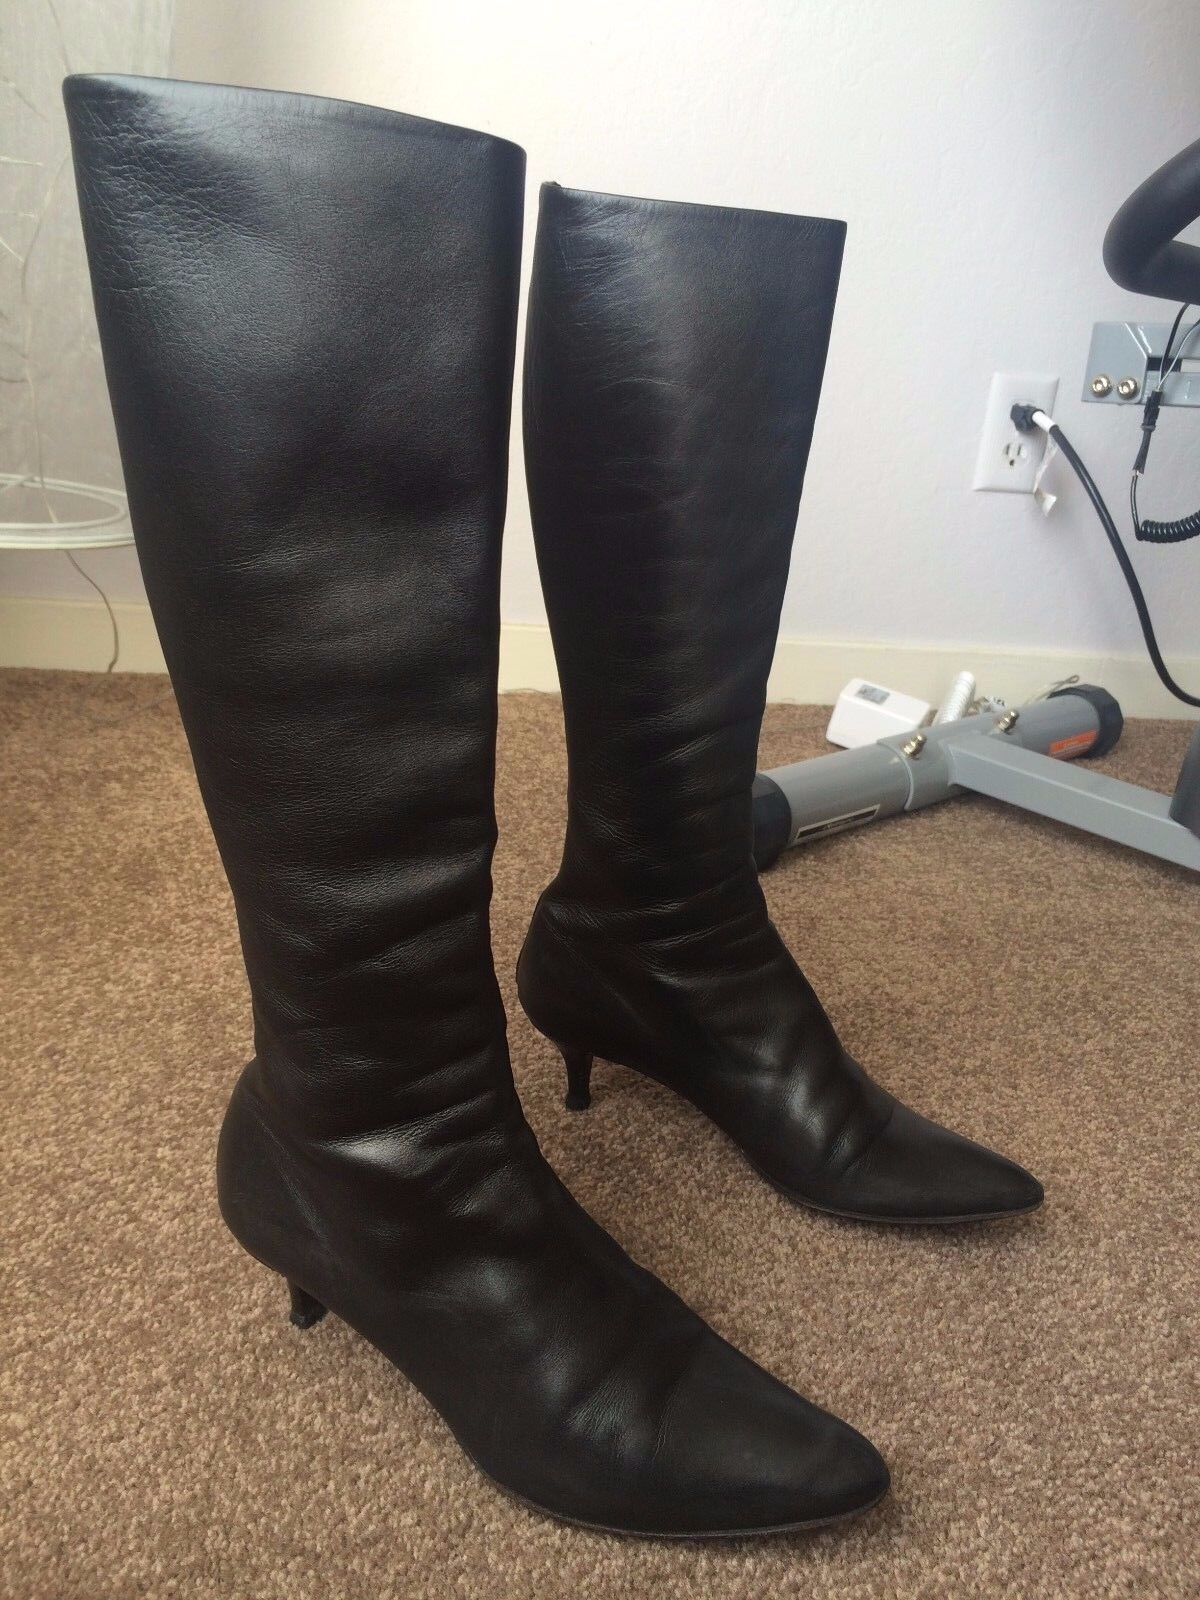 AUTH HELMUT LANG KNEE HIGH BOOTS Sz 36 1/2 IT / 6.5 IT